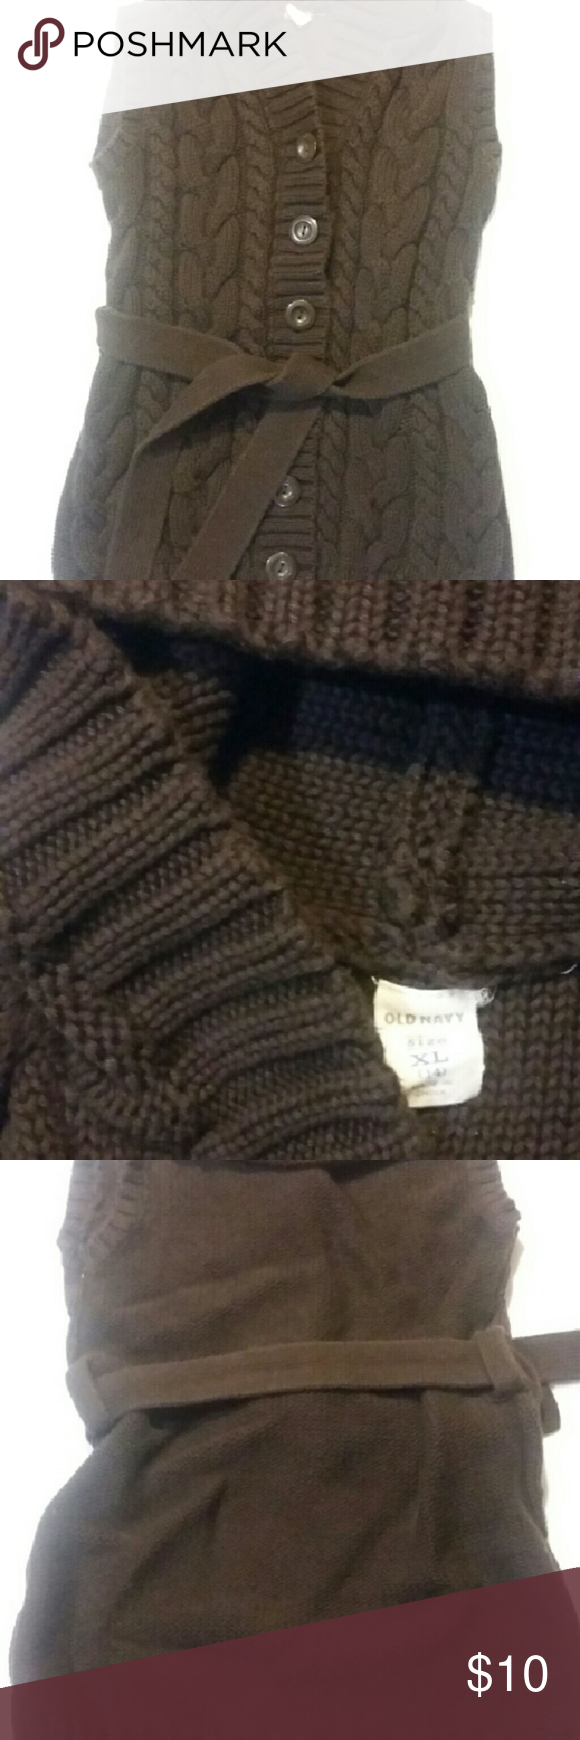 Old navy sleeveless hooded sweater Super cute classic brown ...